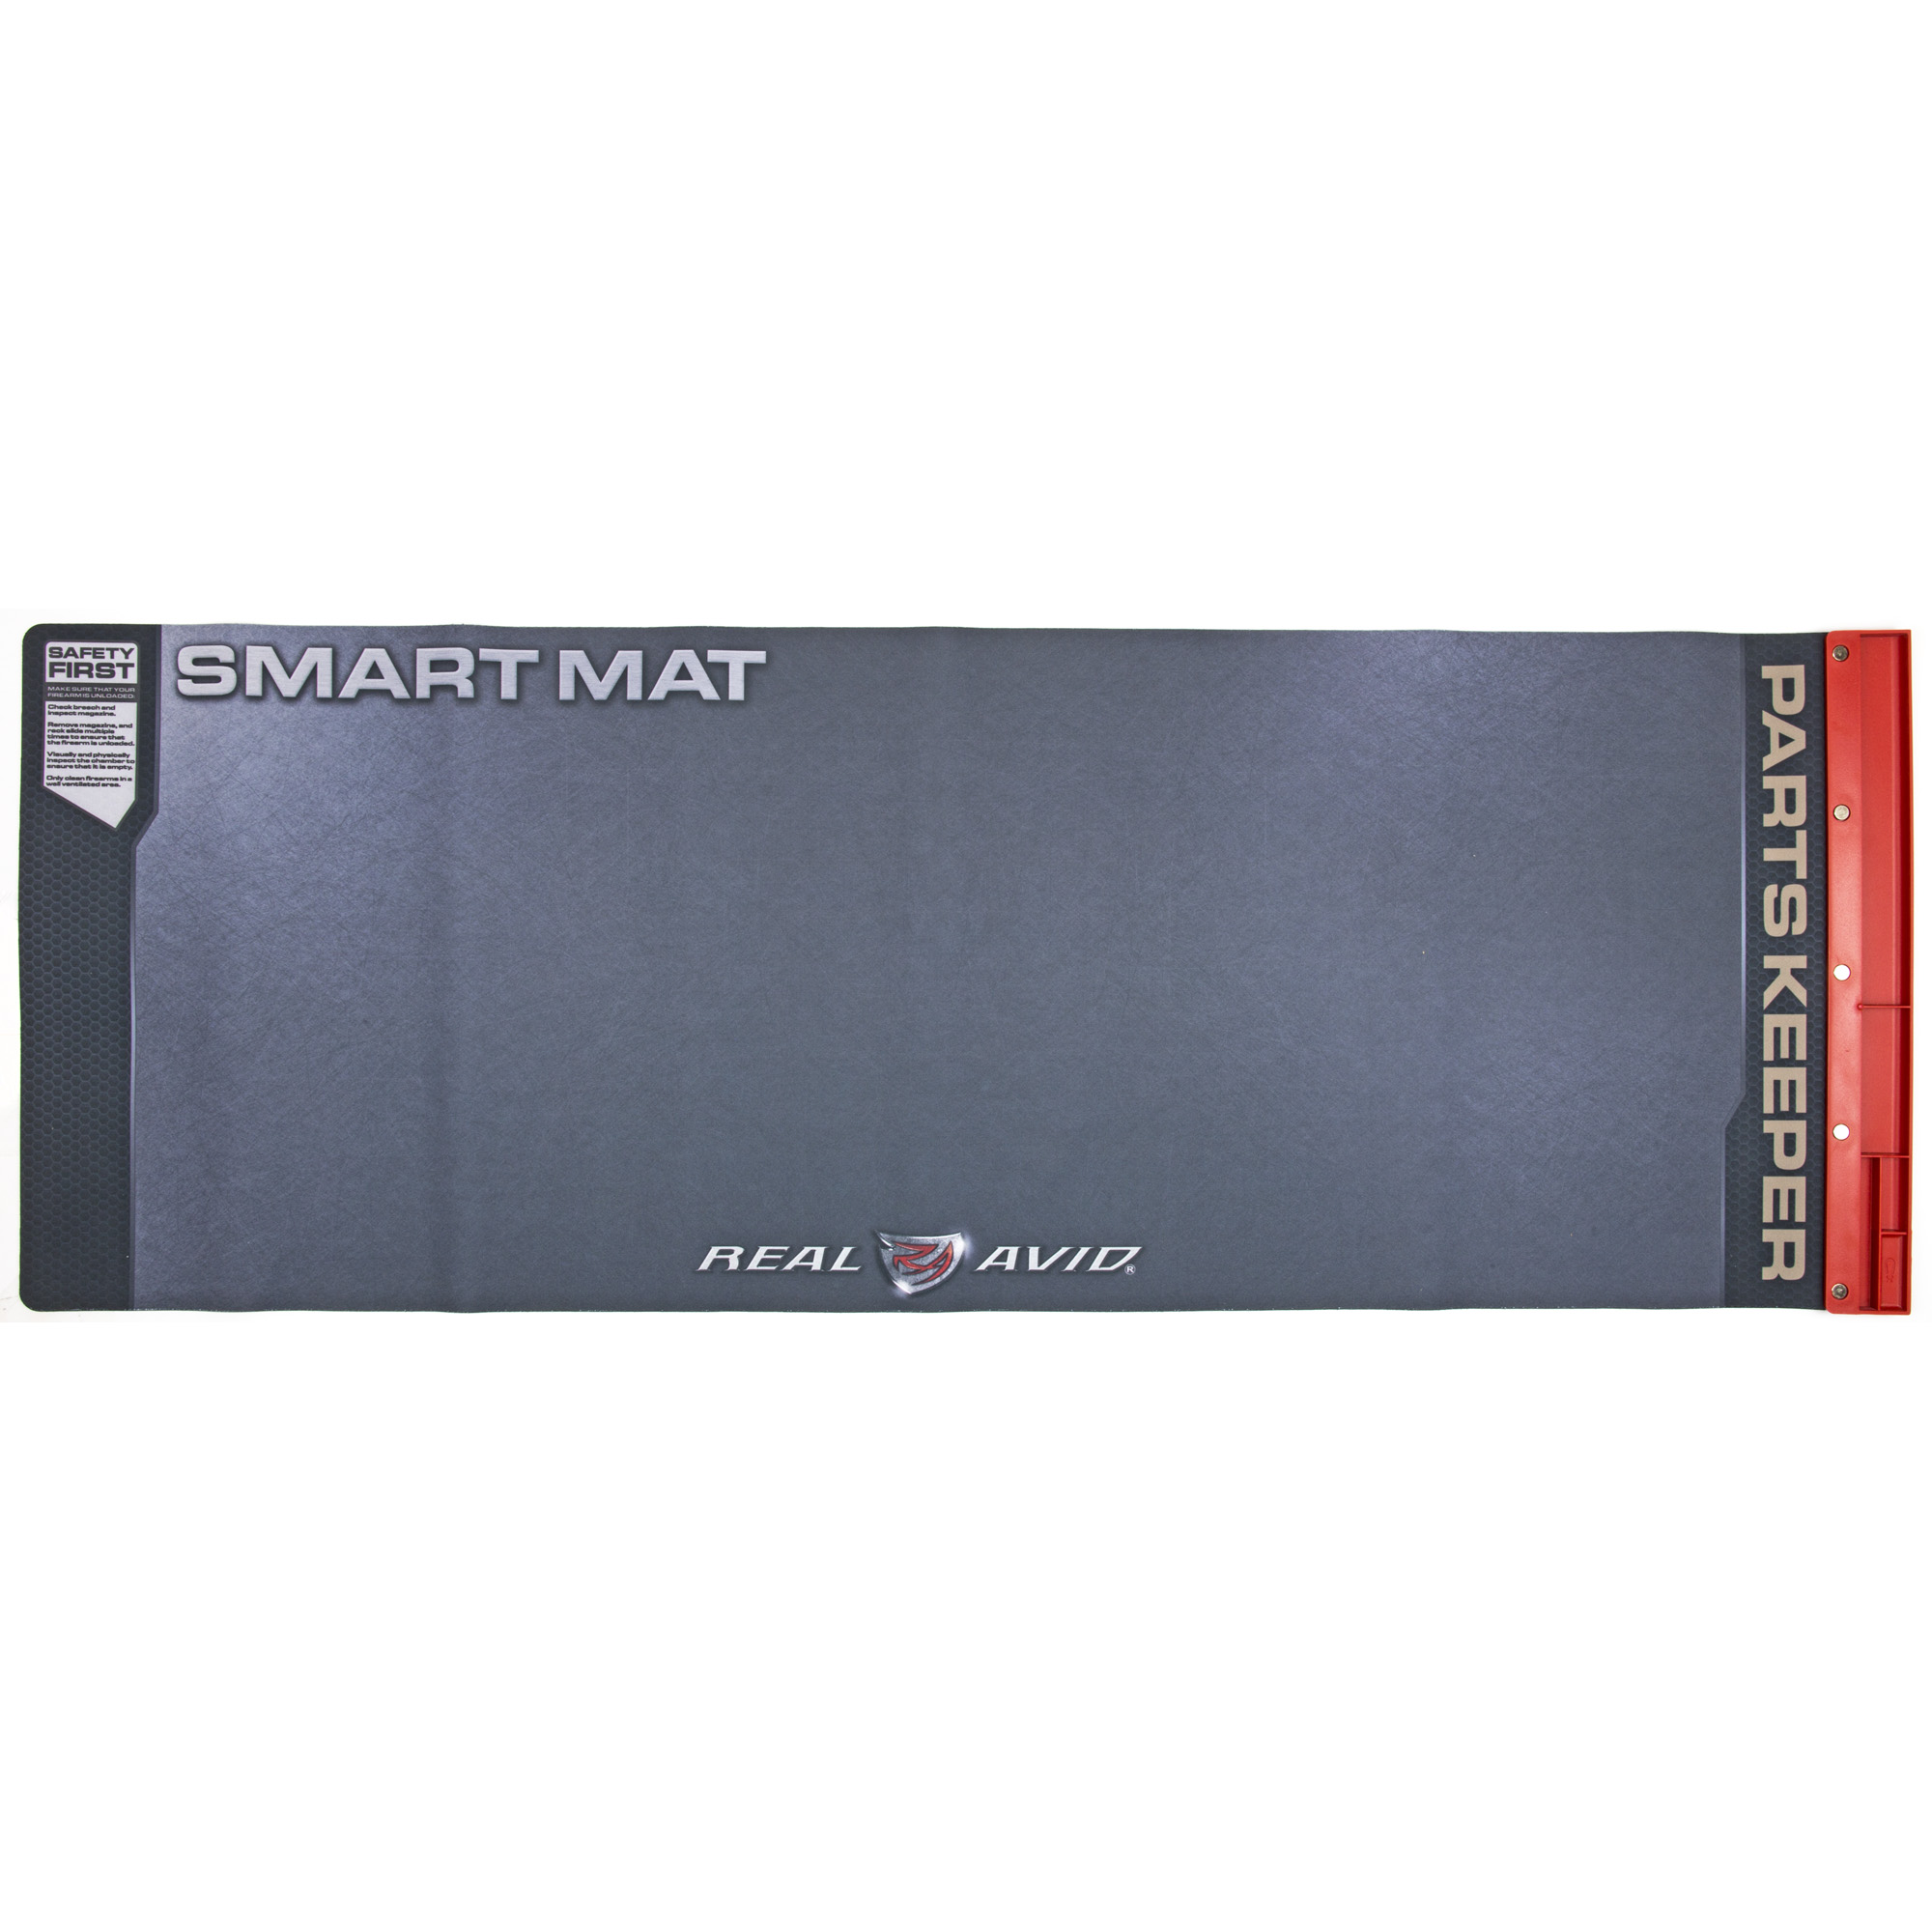 "Get rid of your felt pad and greasy beach towels and treat your firearms with the respect they deserve. The Universal Smart Mat was designed to be the ultimate cleaning mat for all your guns. This 43"" x 16"" padded mat is large enough to handle your disassembled guns and includes an attached parts tray to hold your pins"" screws"" and springs so they are always safely within reach. The oil-resistant surface allows you to clean your gun without ruining the kitchen table."